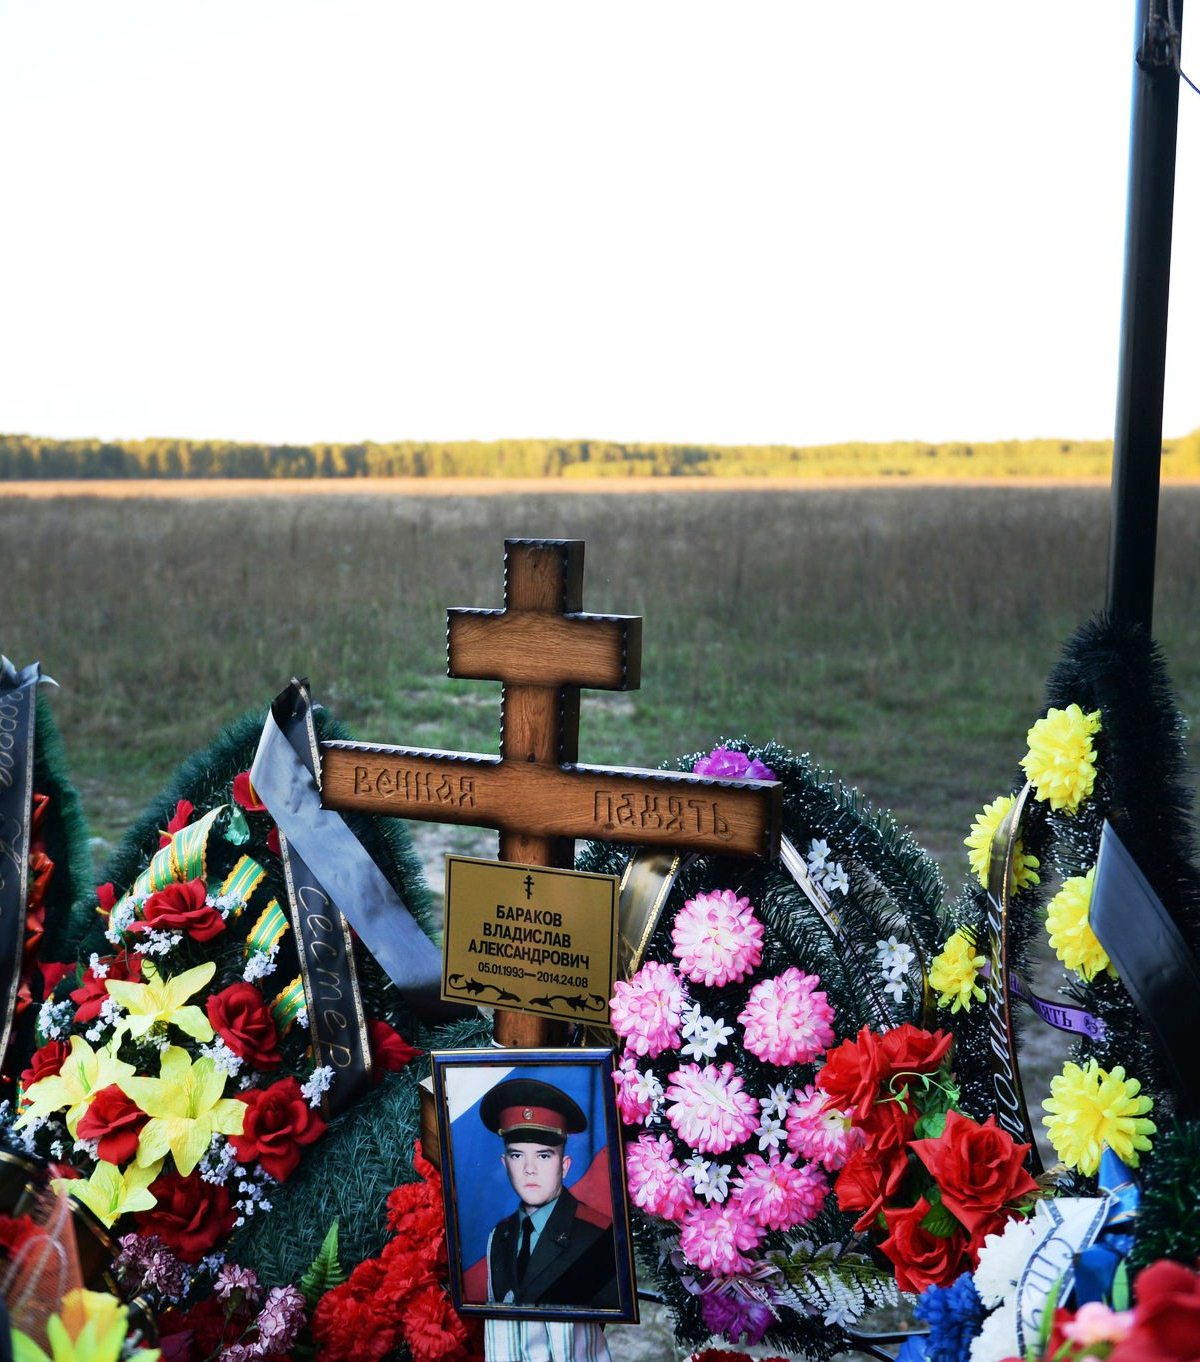 Soldiers' graves bear witness to Russia's role in Ukraine